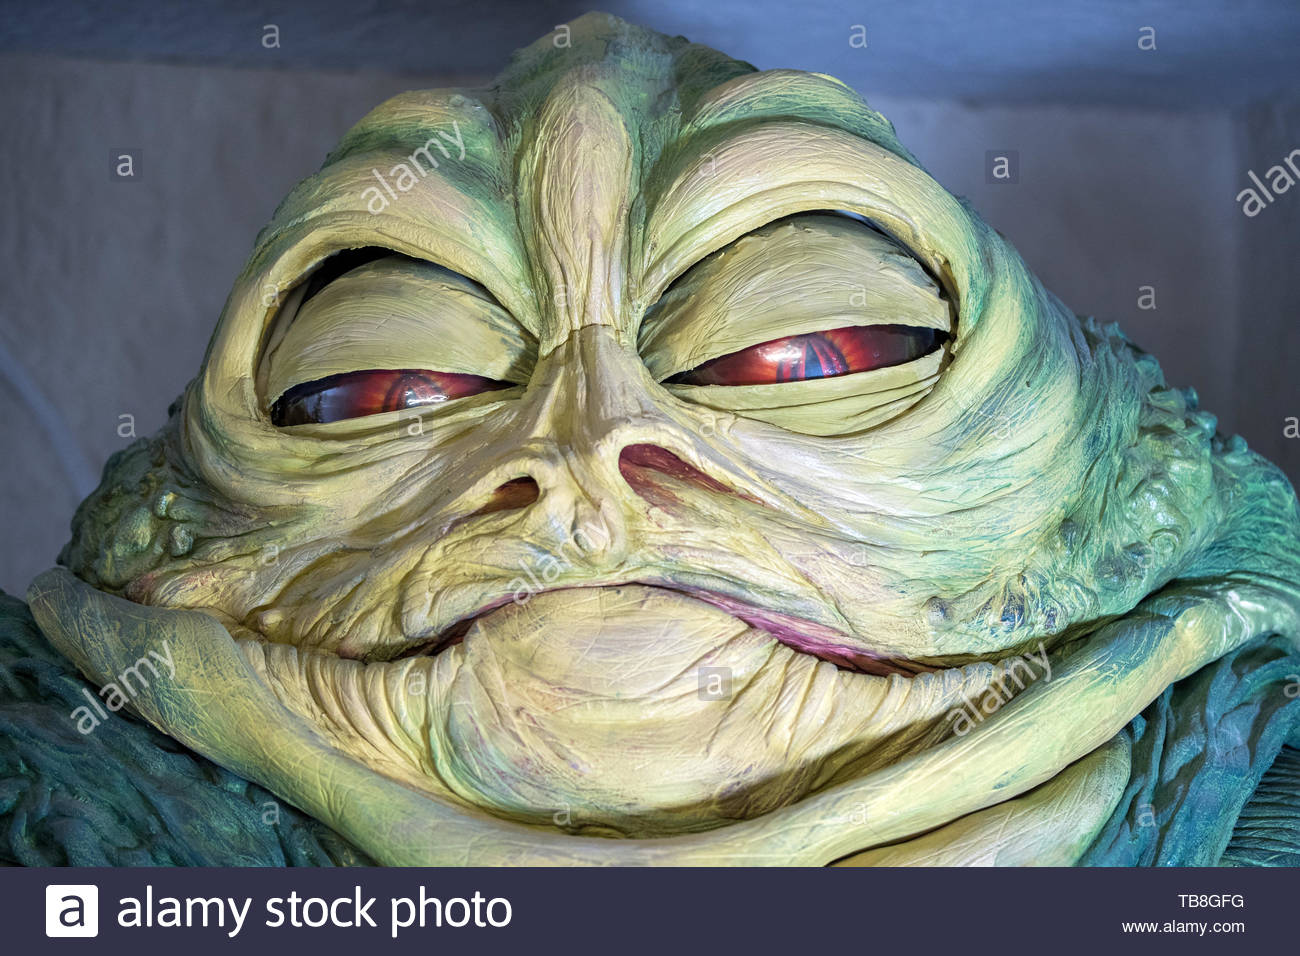 99a23ef2d0 27 May 2019, Mecklenburg-Western Pomerania, Dassow: The replica of Jabba,